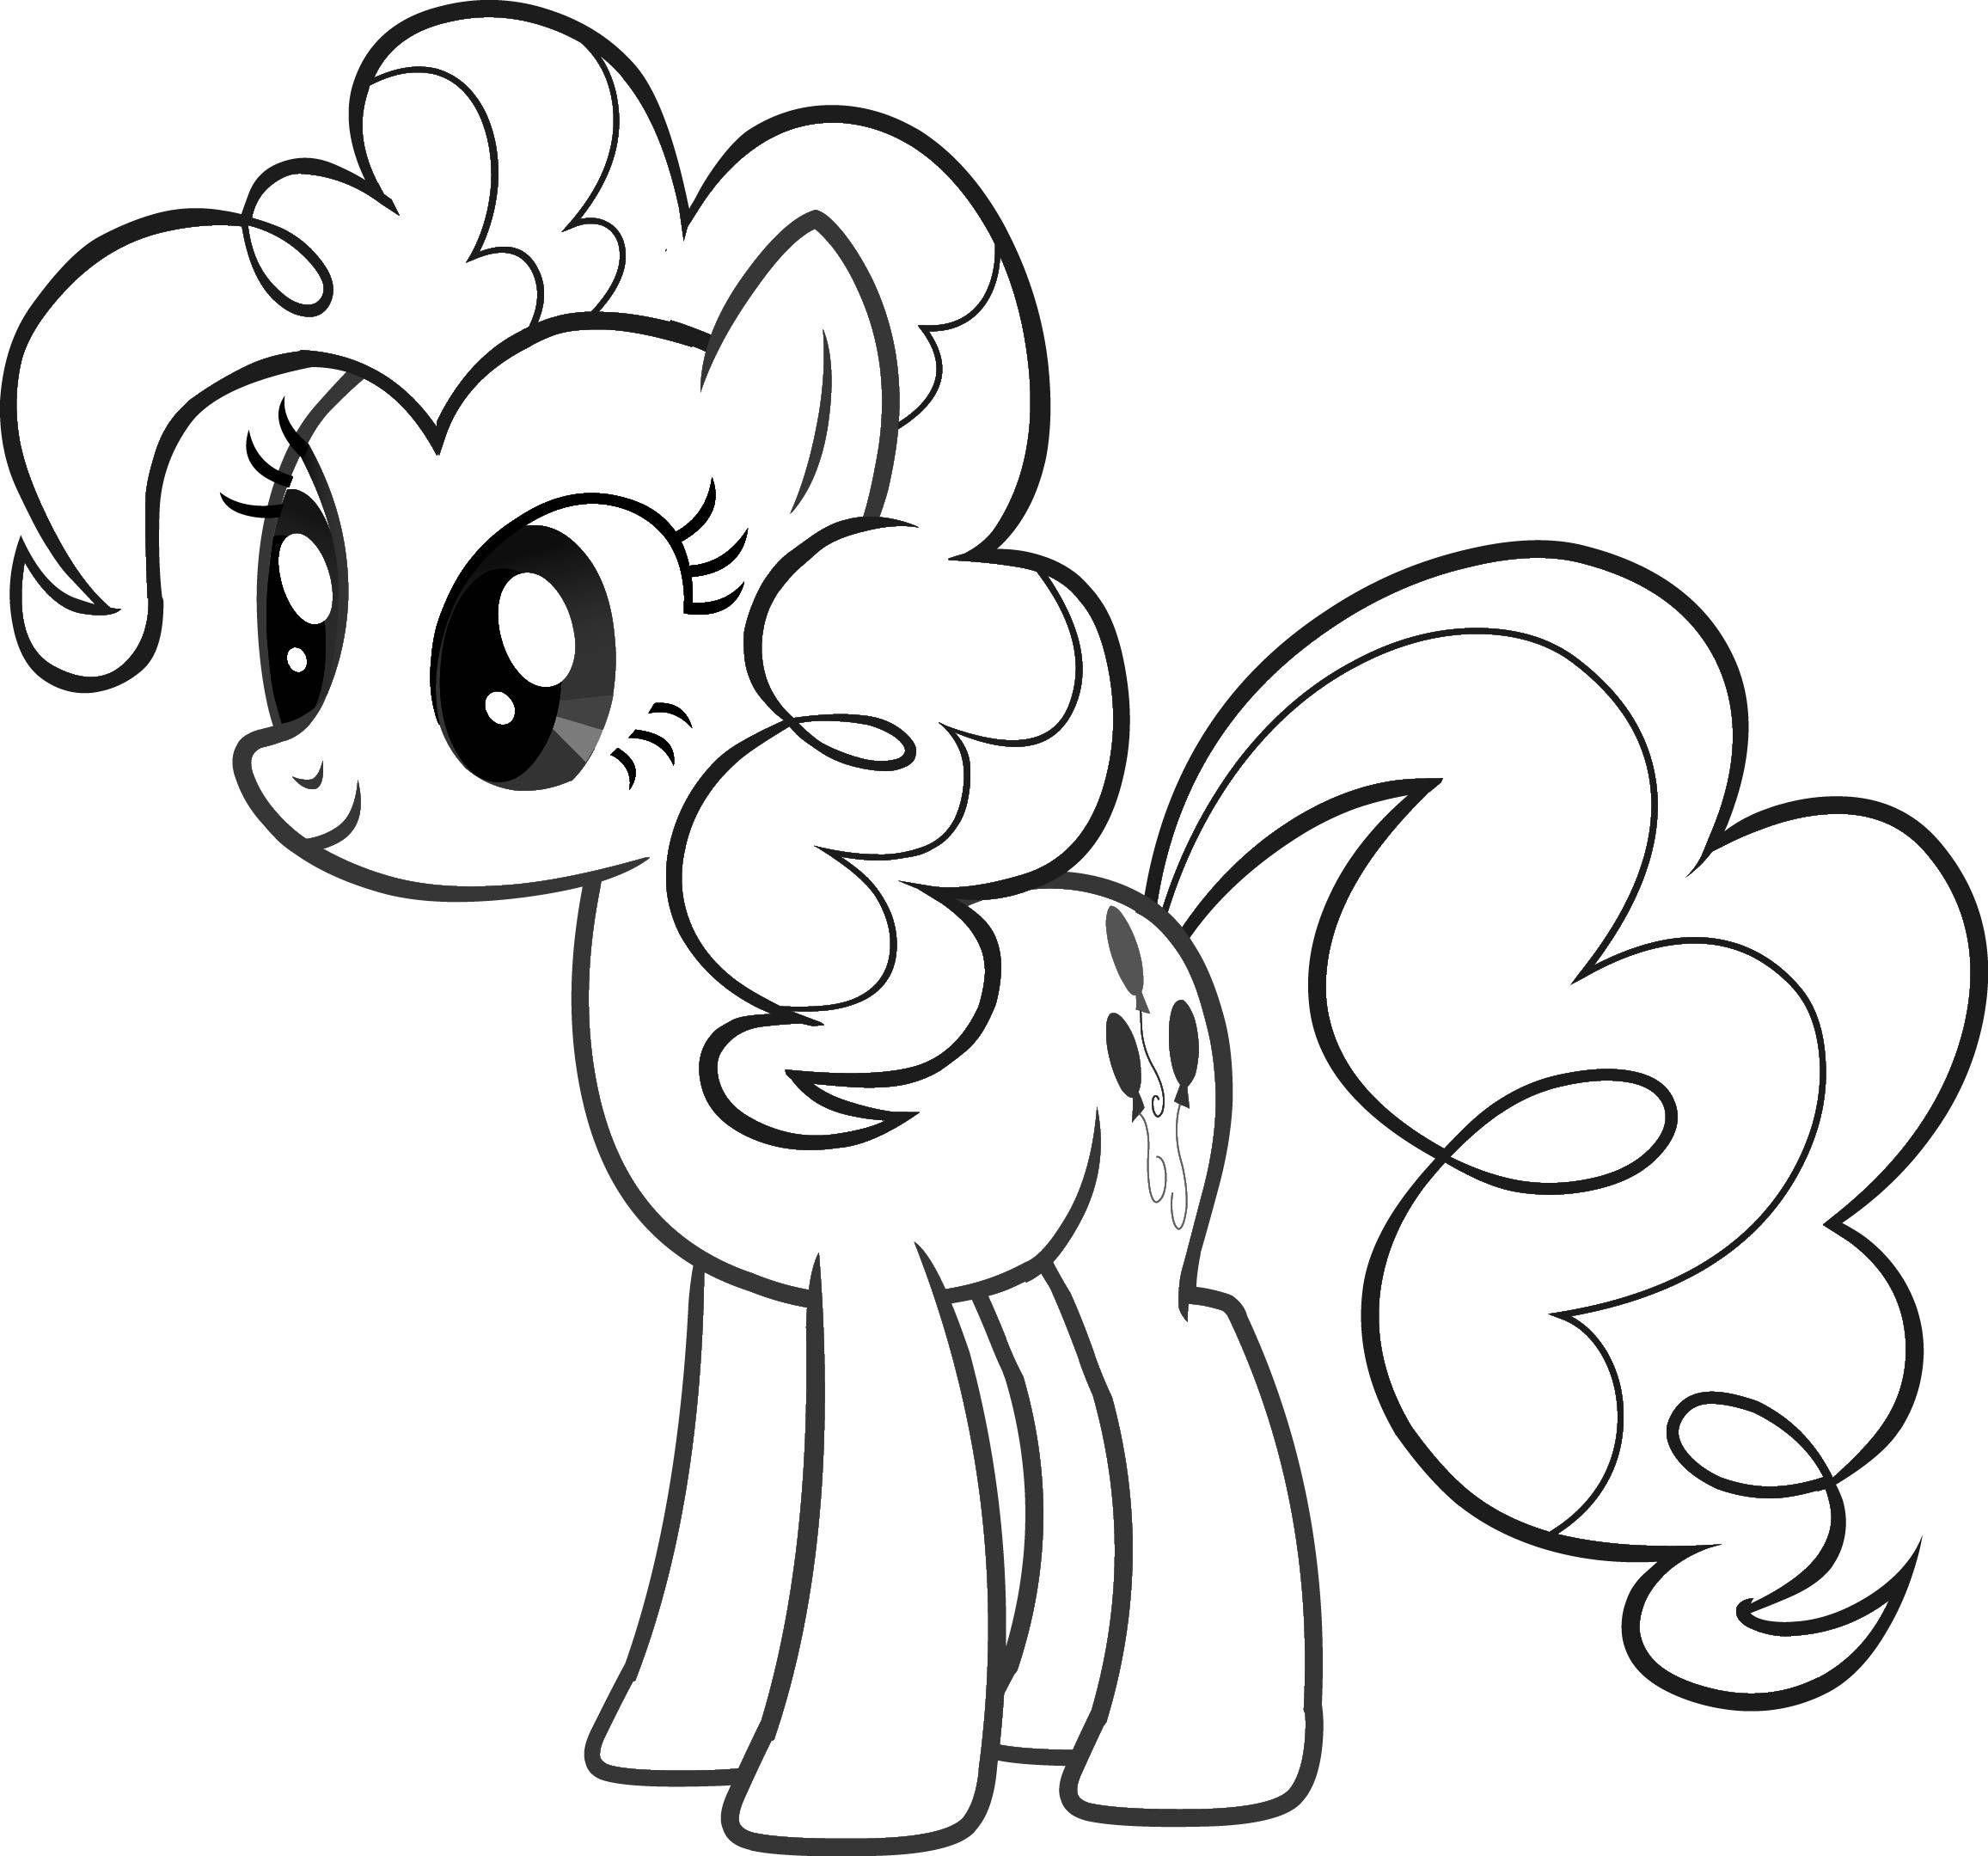 16 Childrens Colouring Pages My Little Pony Unicorn Coloring Pages Kids Printable Coloring Pages My Little Pony Coloring